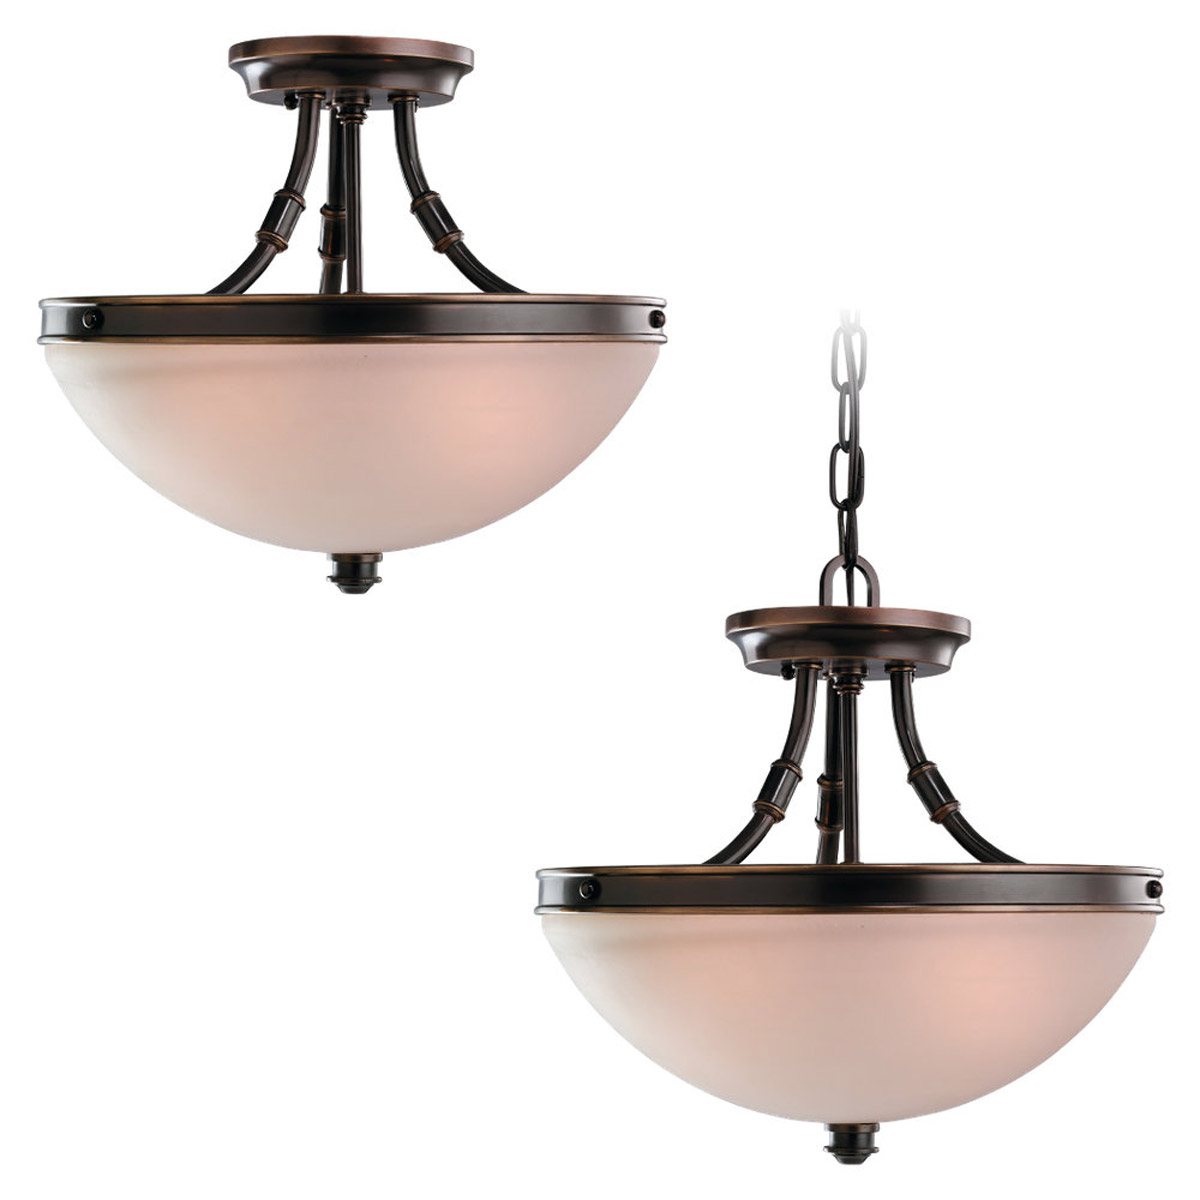 Sea Gull Lighting Warwick 2 Light Semi-Flush Mount in Vintage Bronze 77330-825 photo